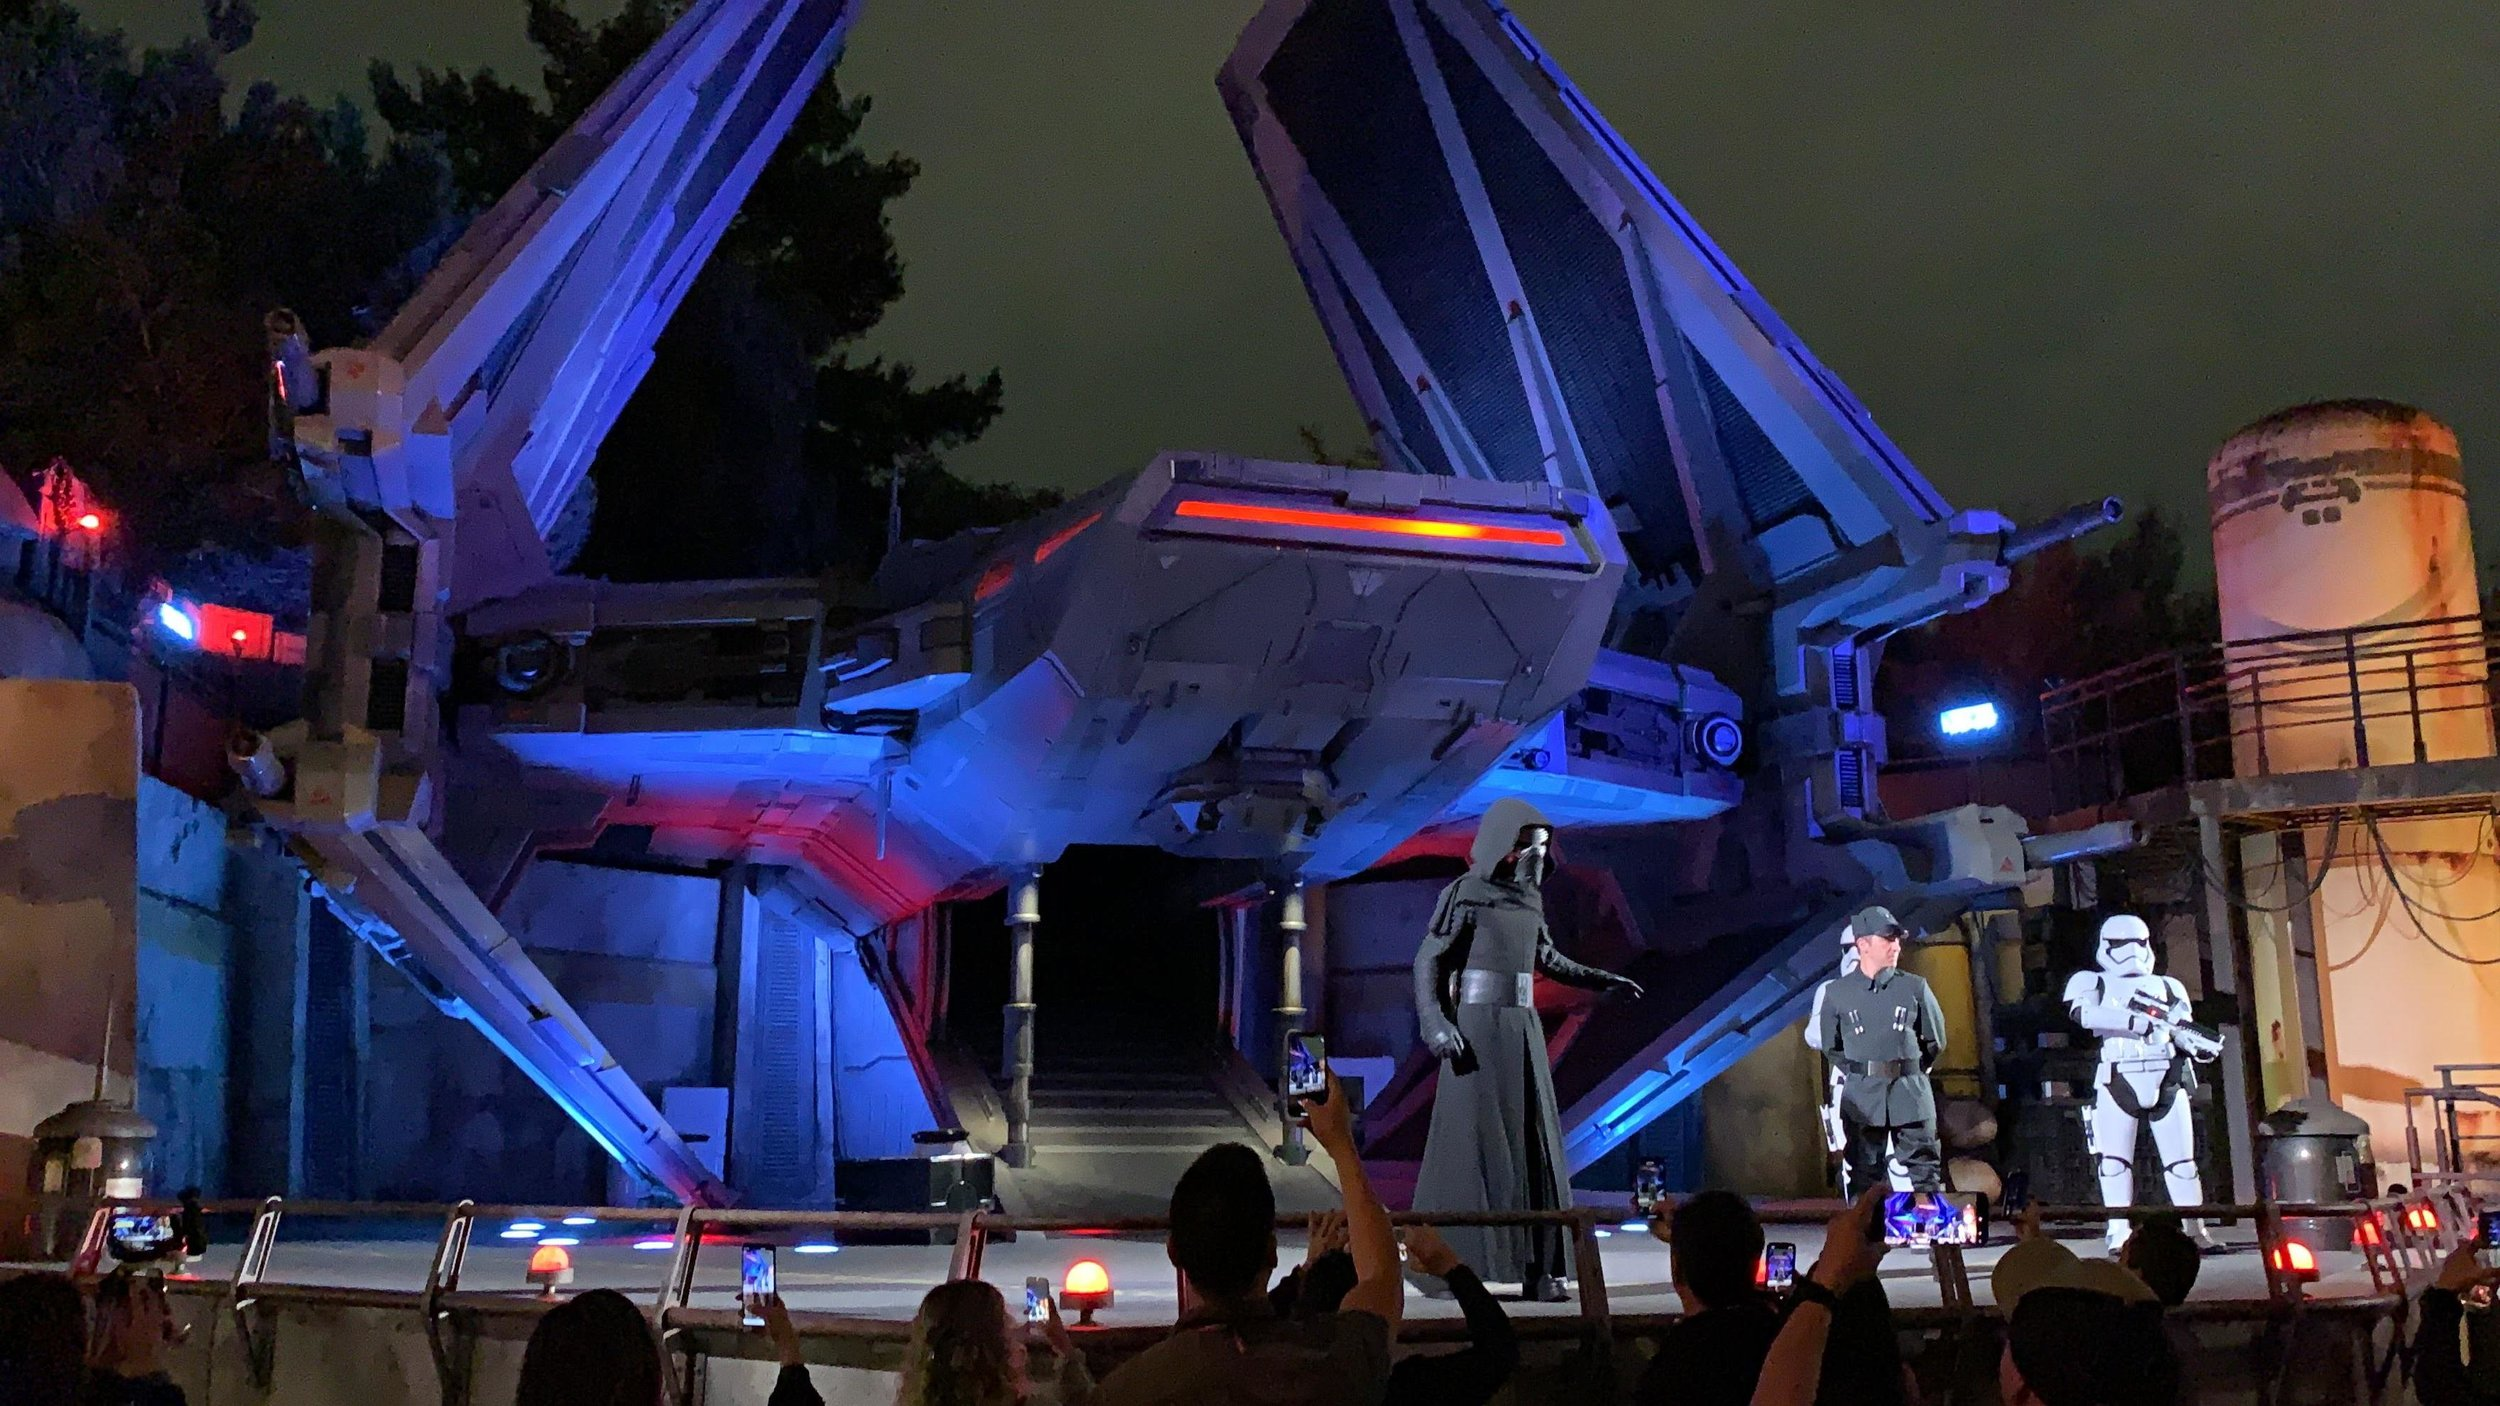 Even Galaxy's Edge has some quick shows to watch